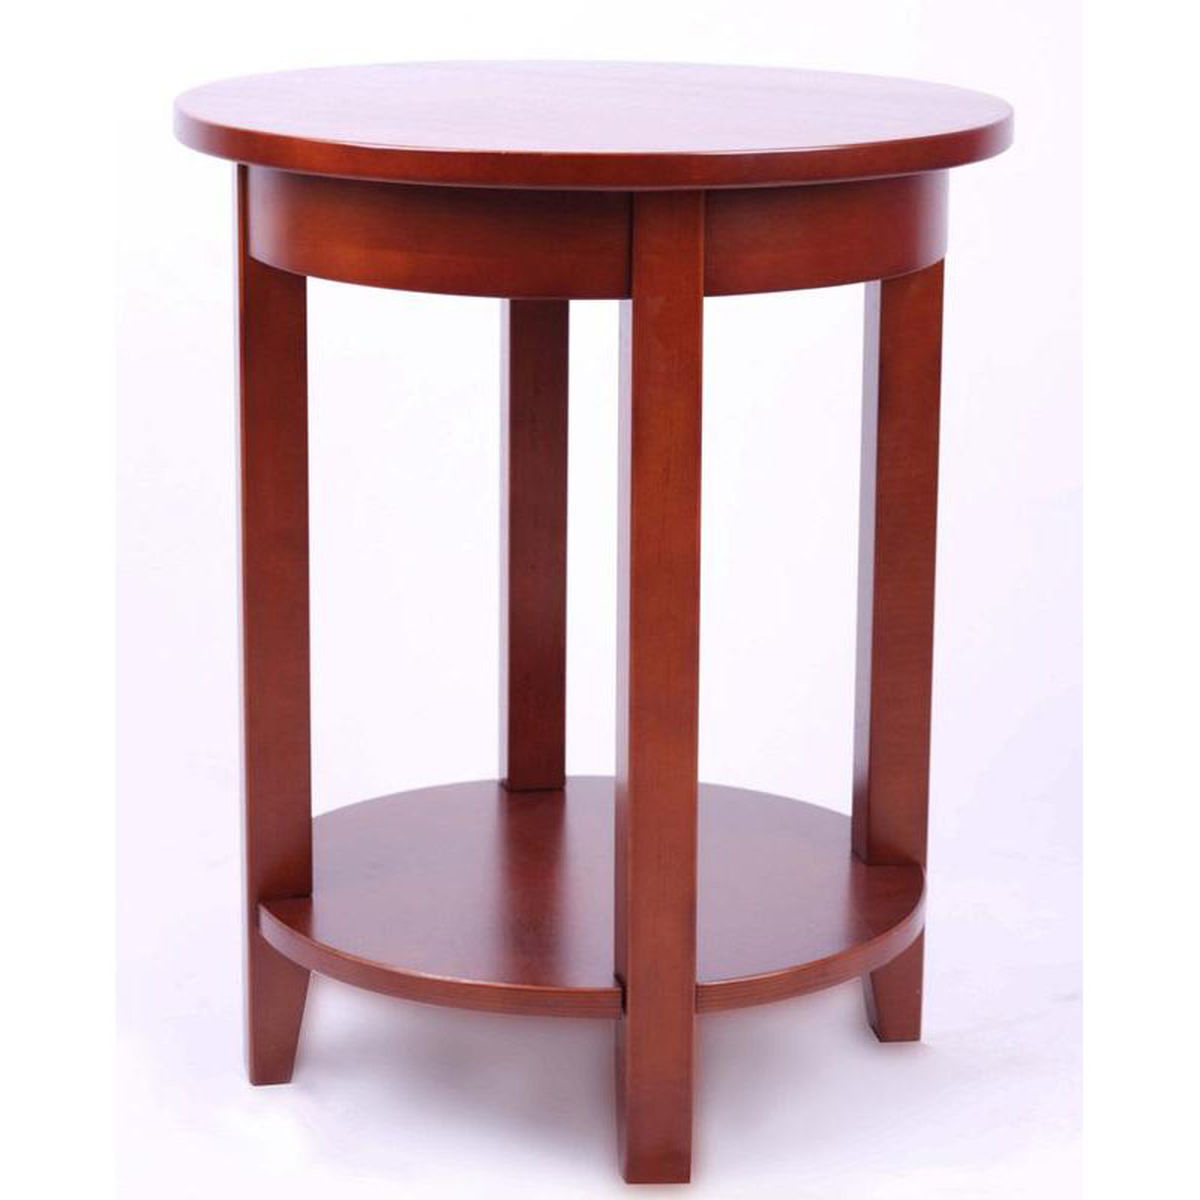 cherry round accent table bizchair bolton furniture bol main our shaker cottage wooden diameter with storage shelf cover transparent coffee west elm nautical bedroom decor ballard